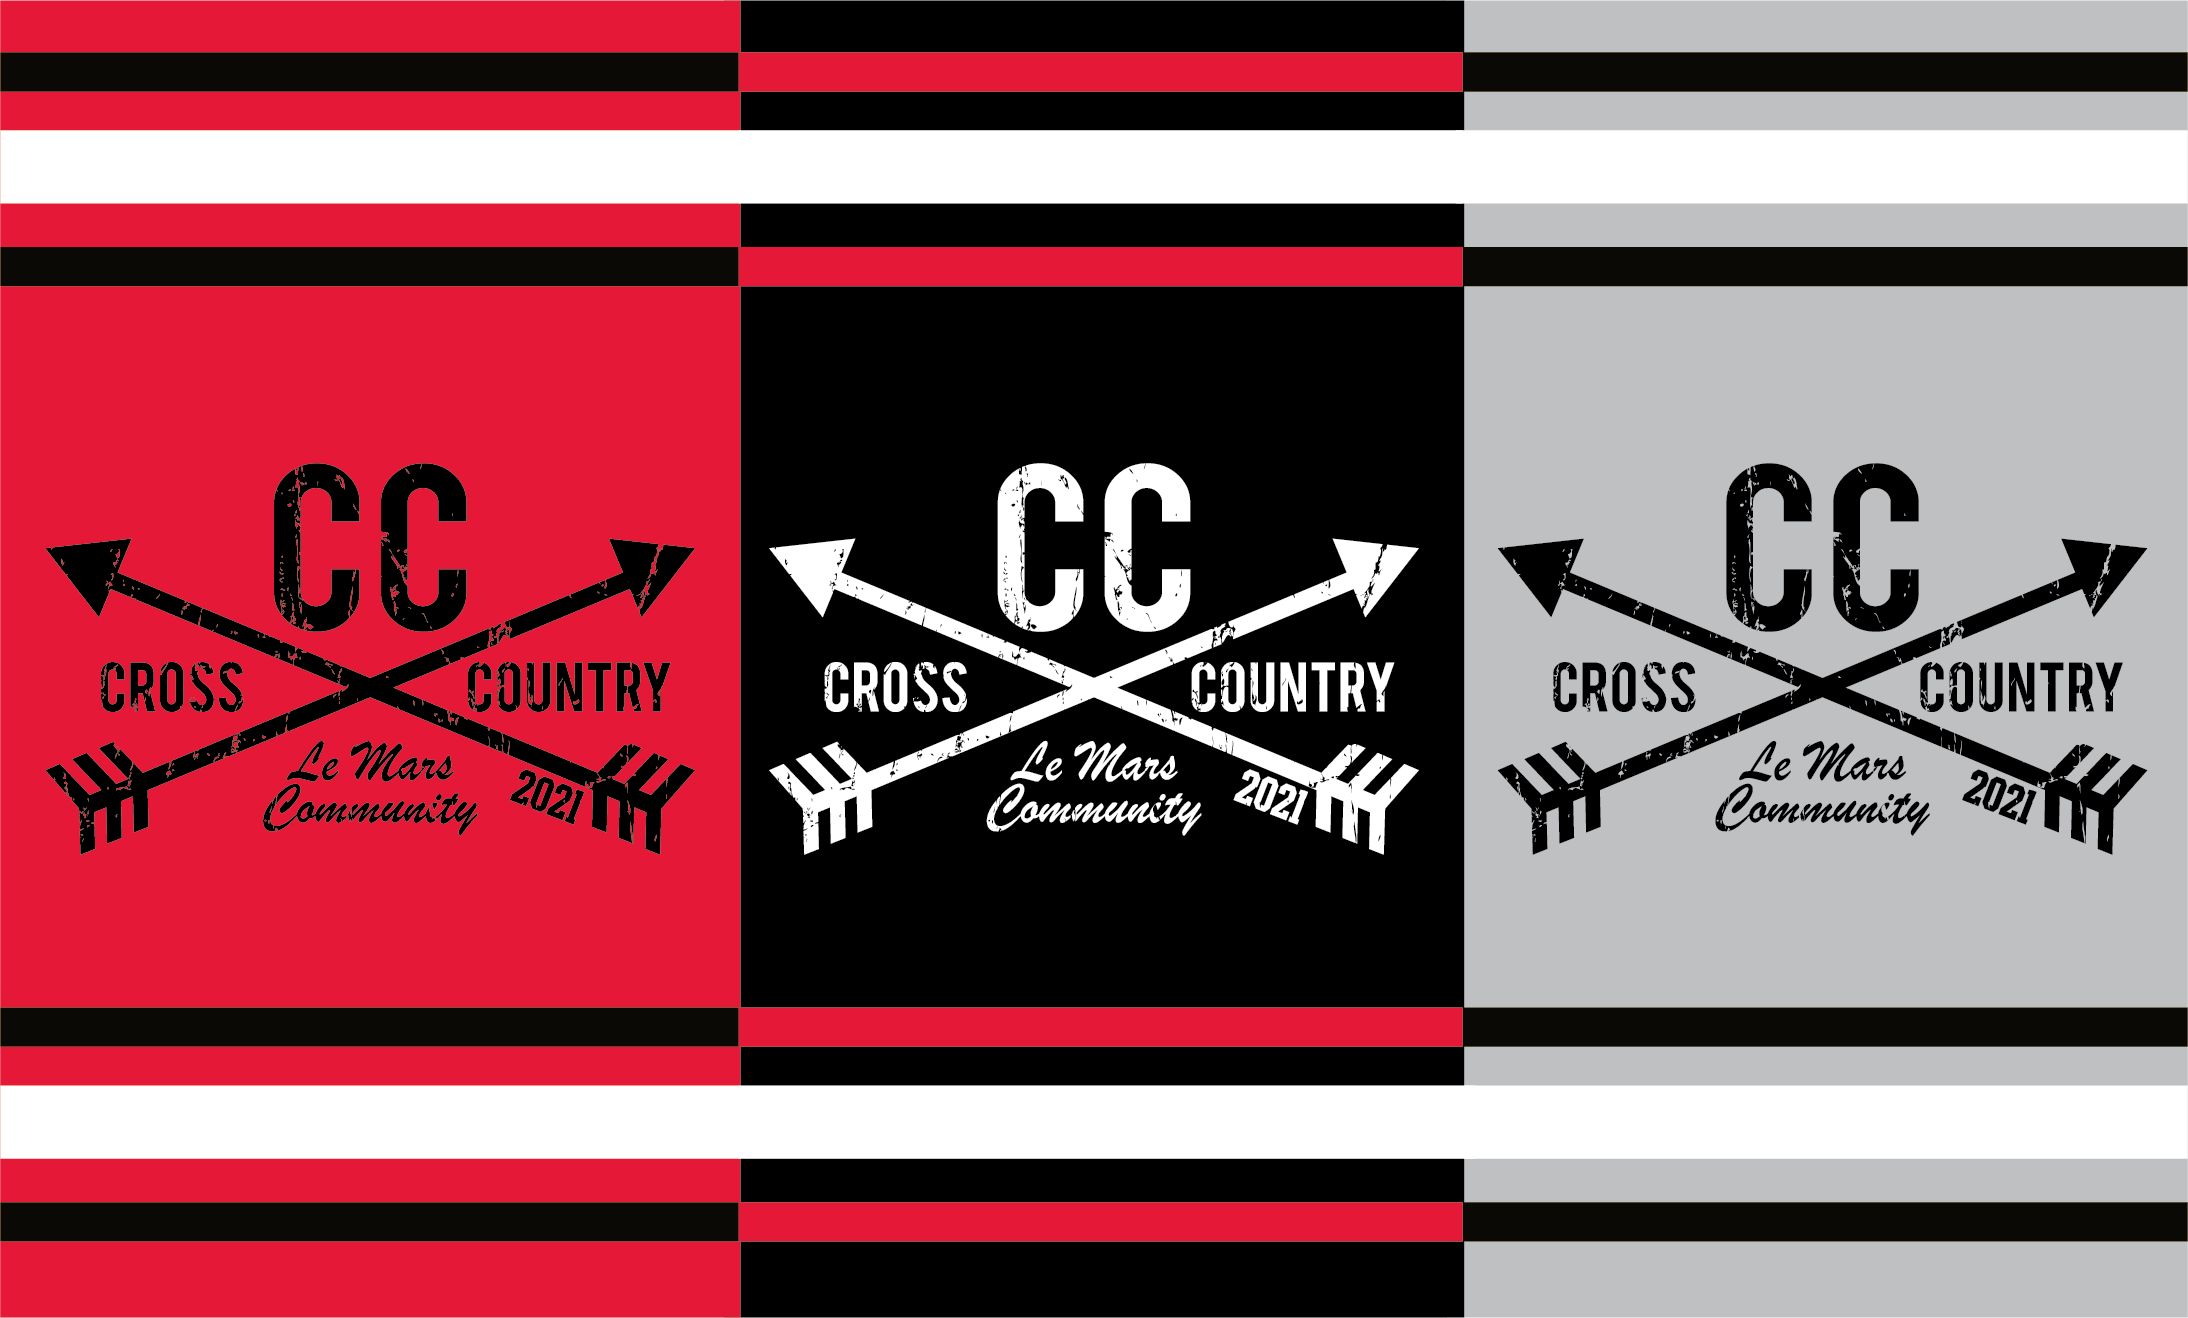 LCHS 2021 Cross Country